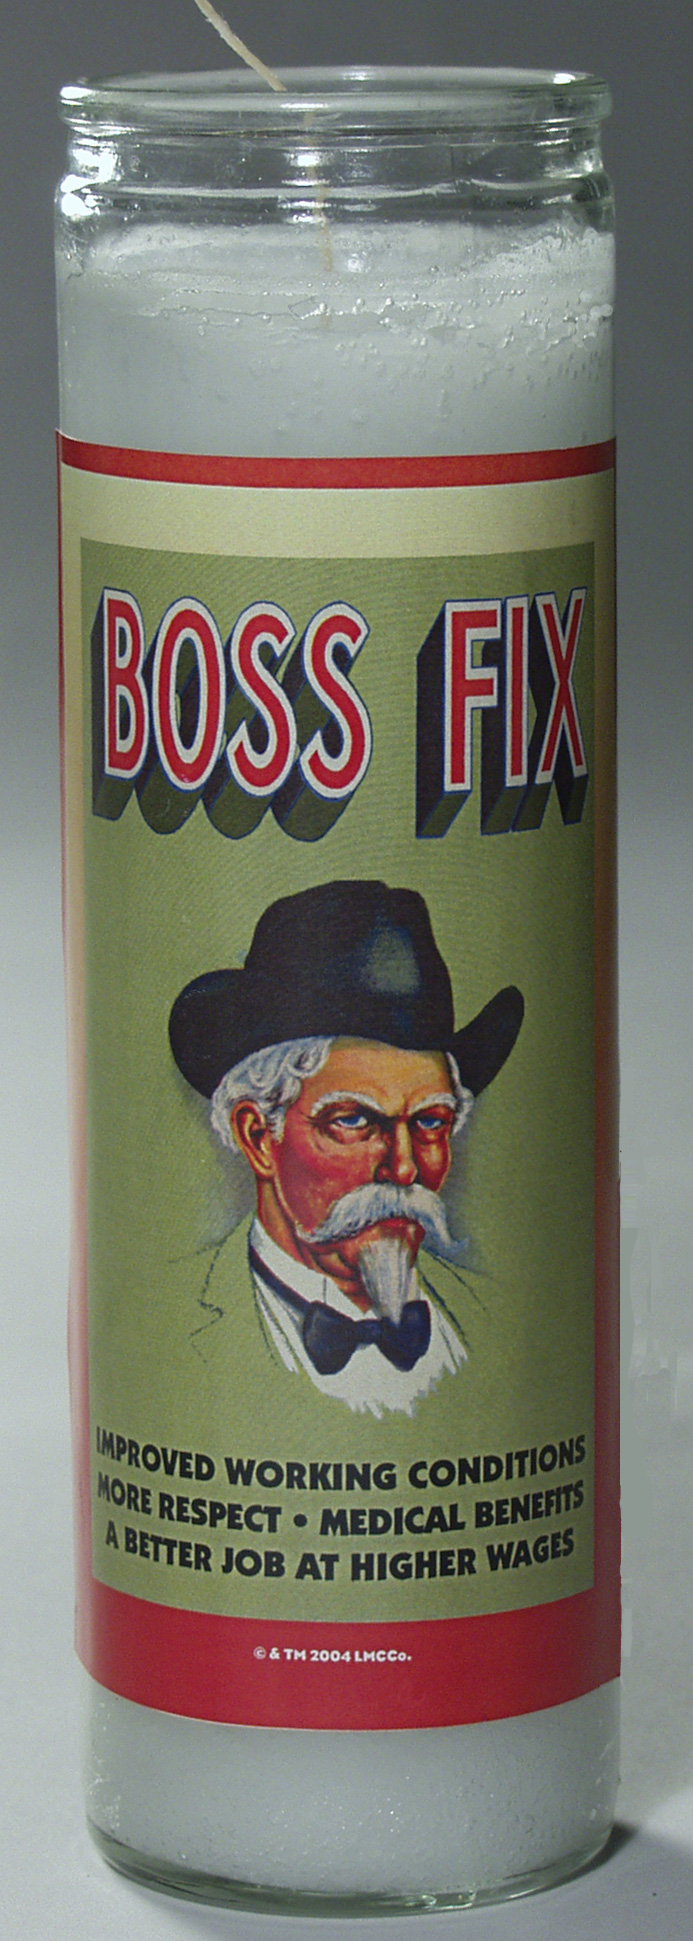 boss-fix-candle